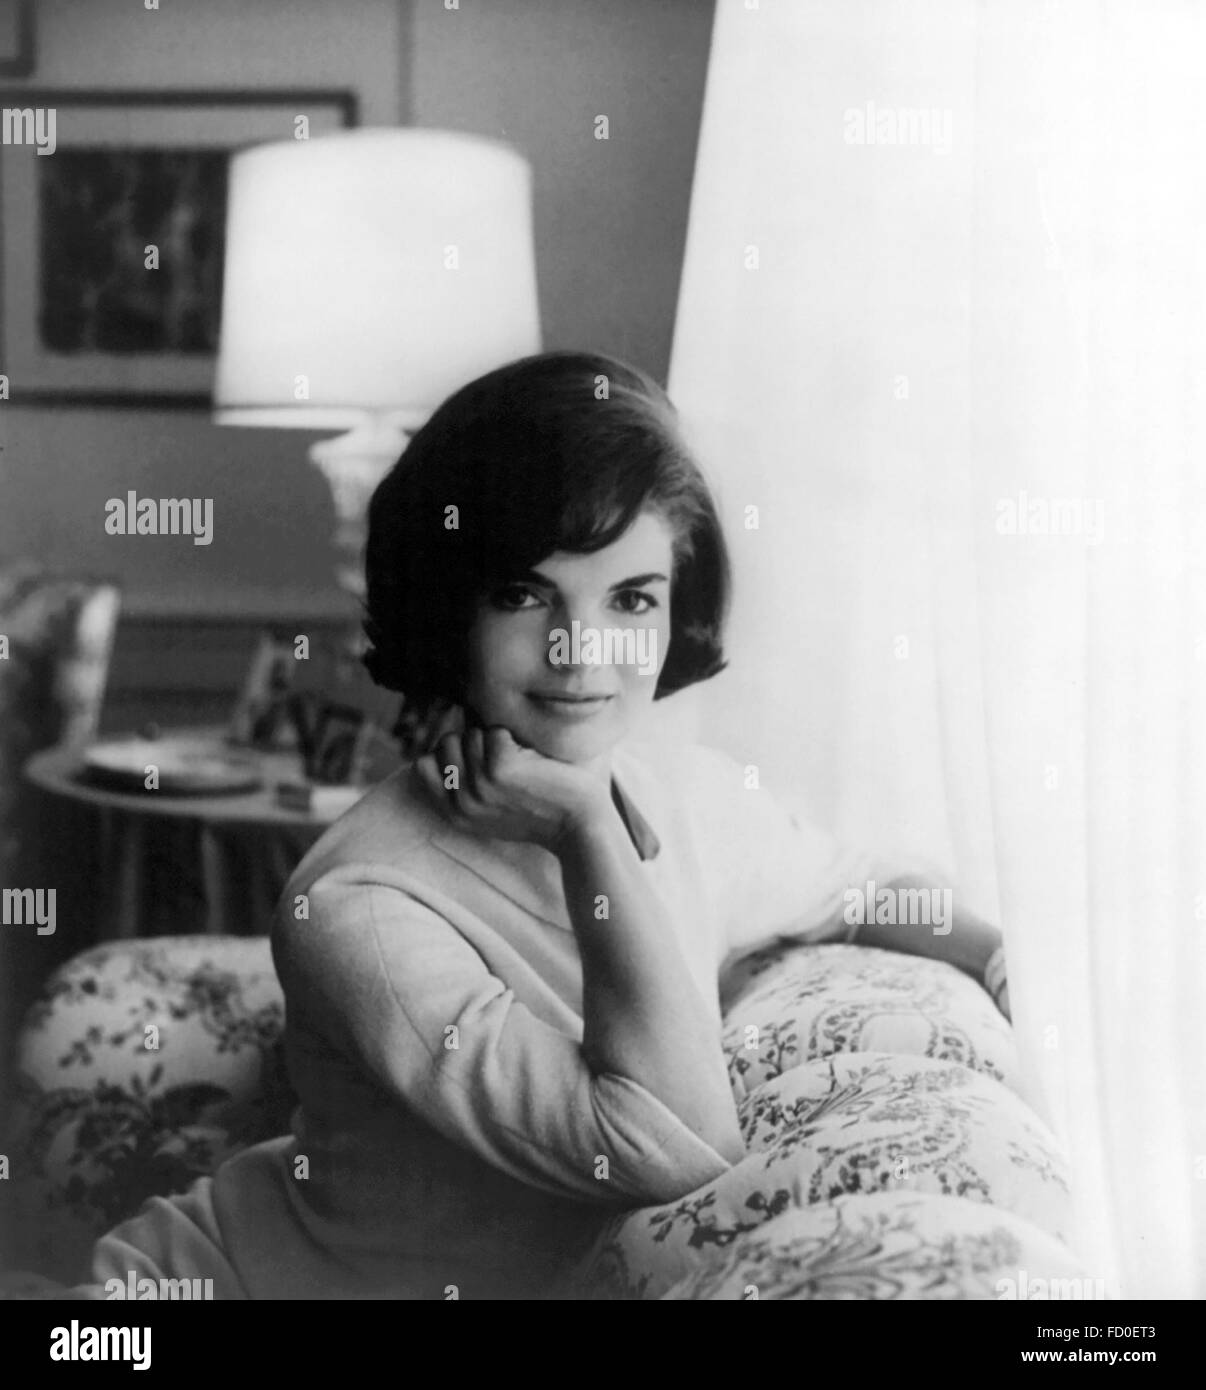 Jackie Kennedy. First official White House photograph of Jacqueline Kennedy, wife of John F Kennedy, the 35th President - Stock Image